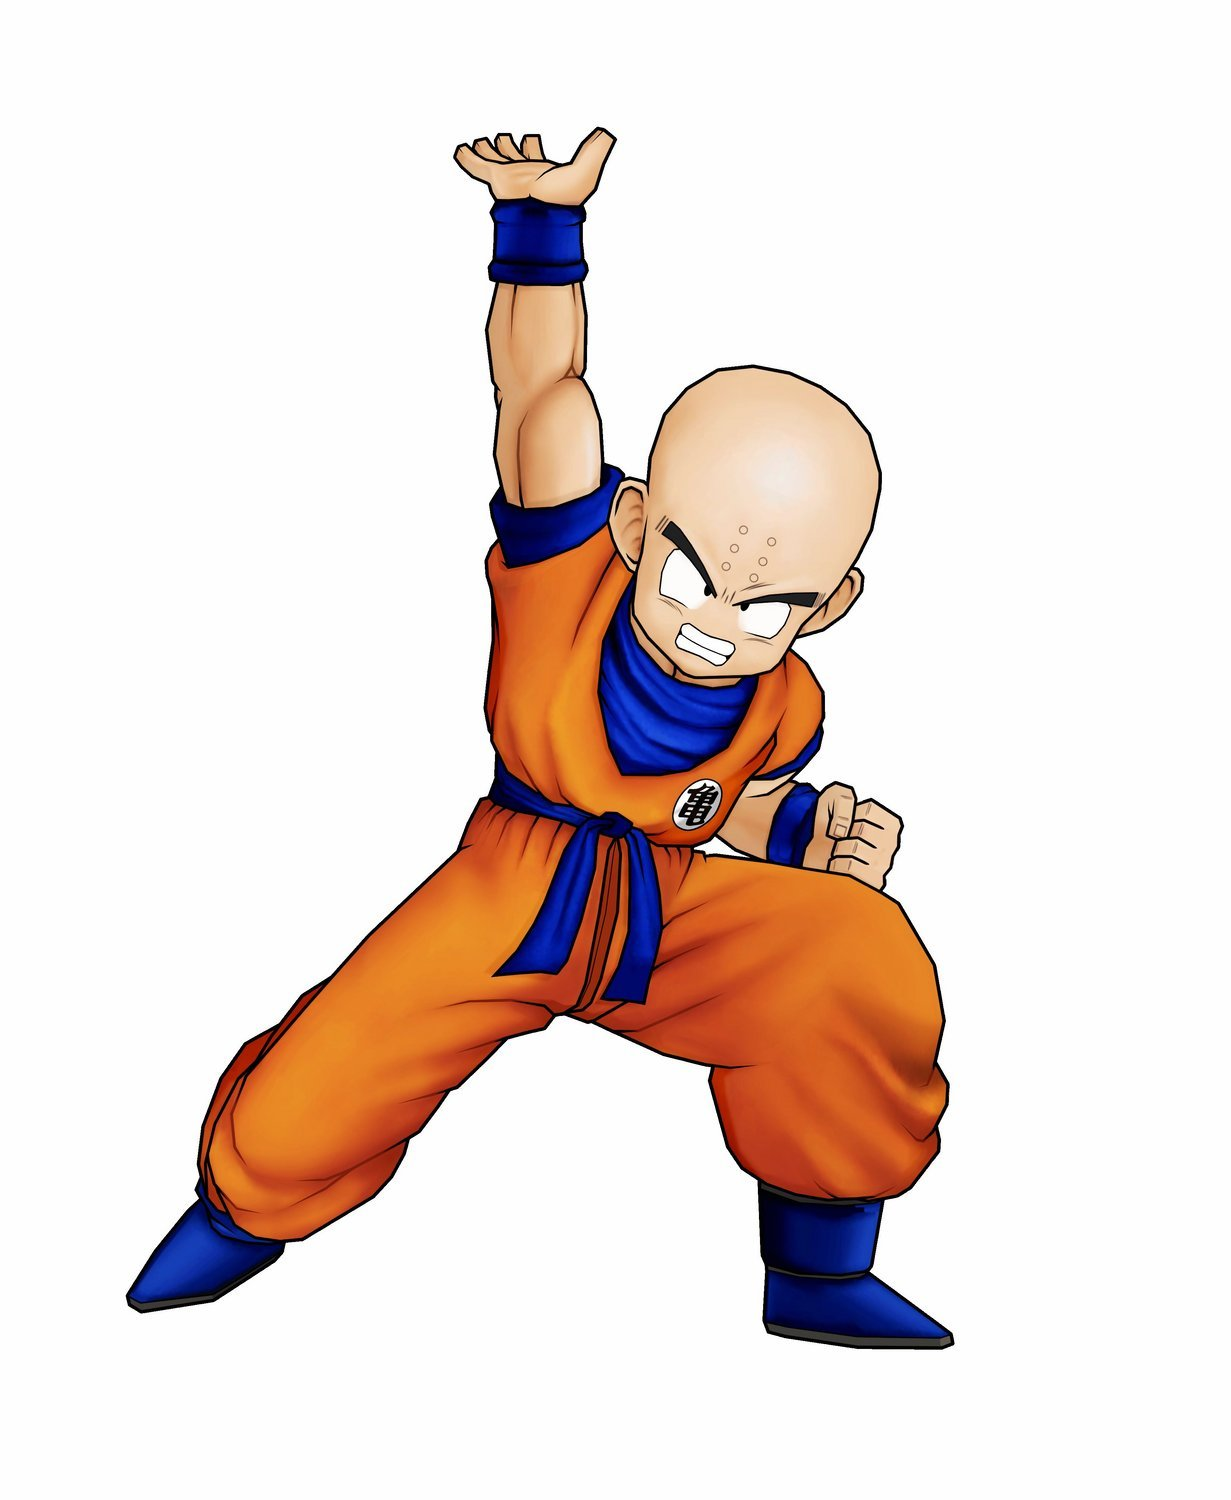 Wallpaper Celebs Cute Krillin   HD Wallpapers 1231x1500